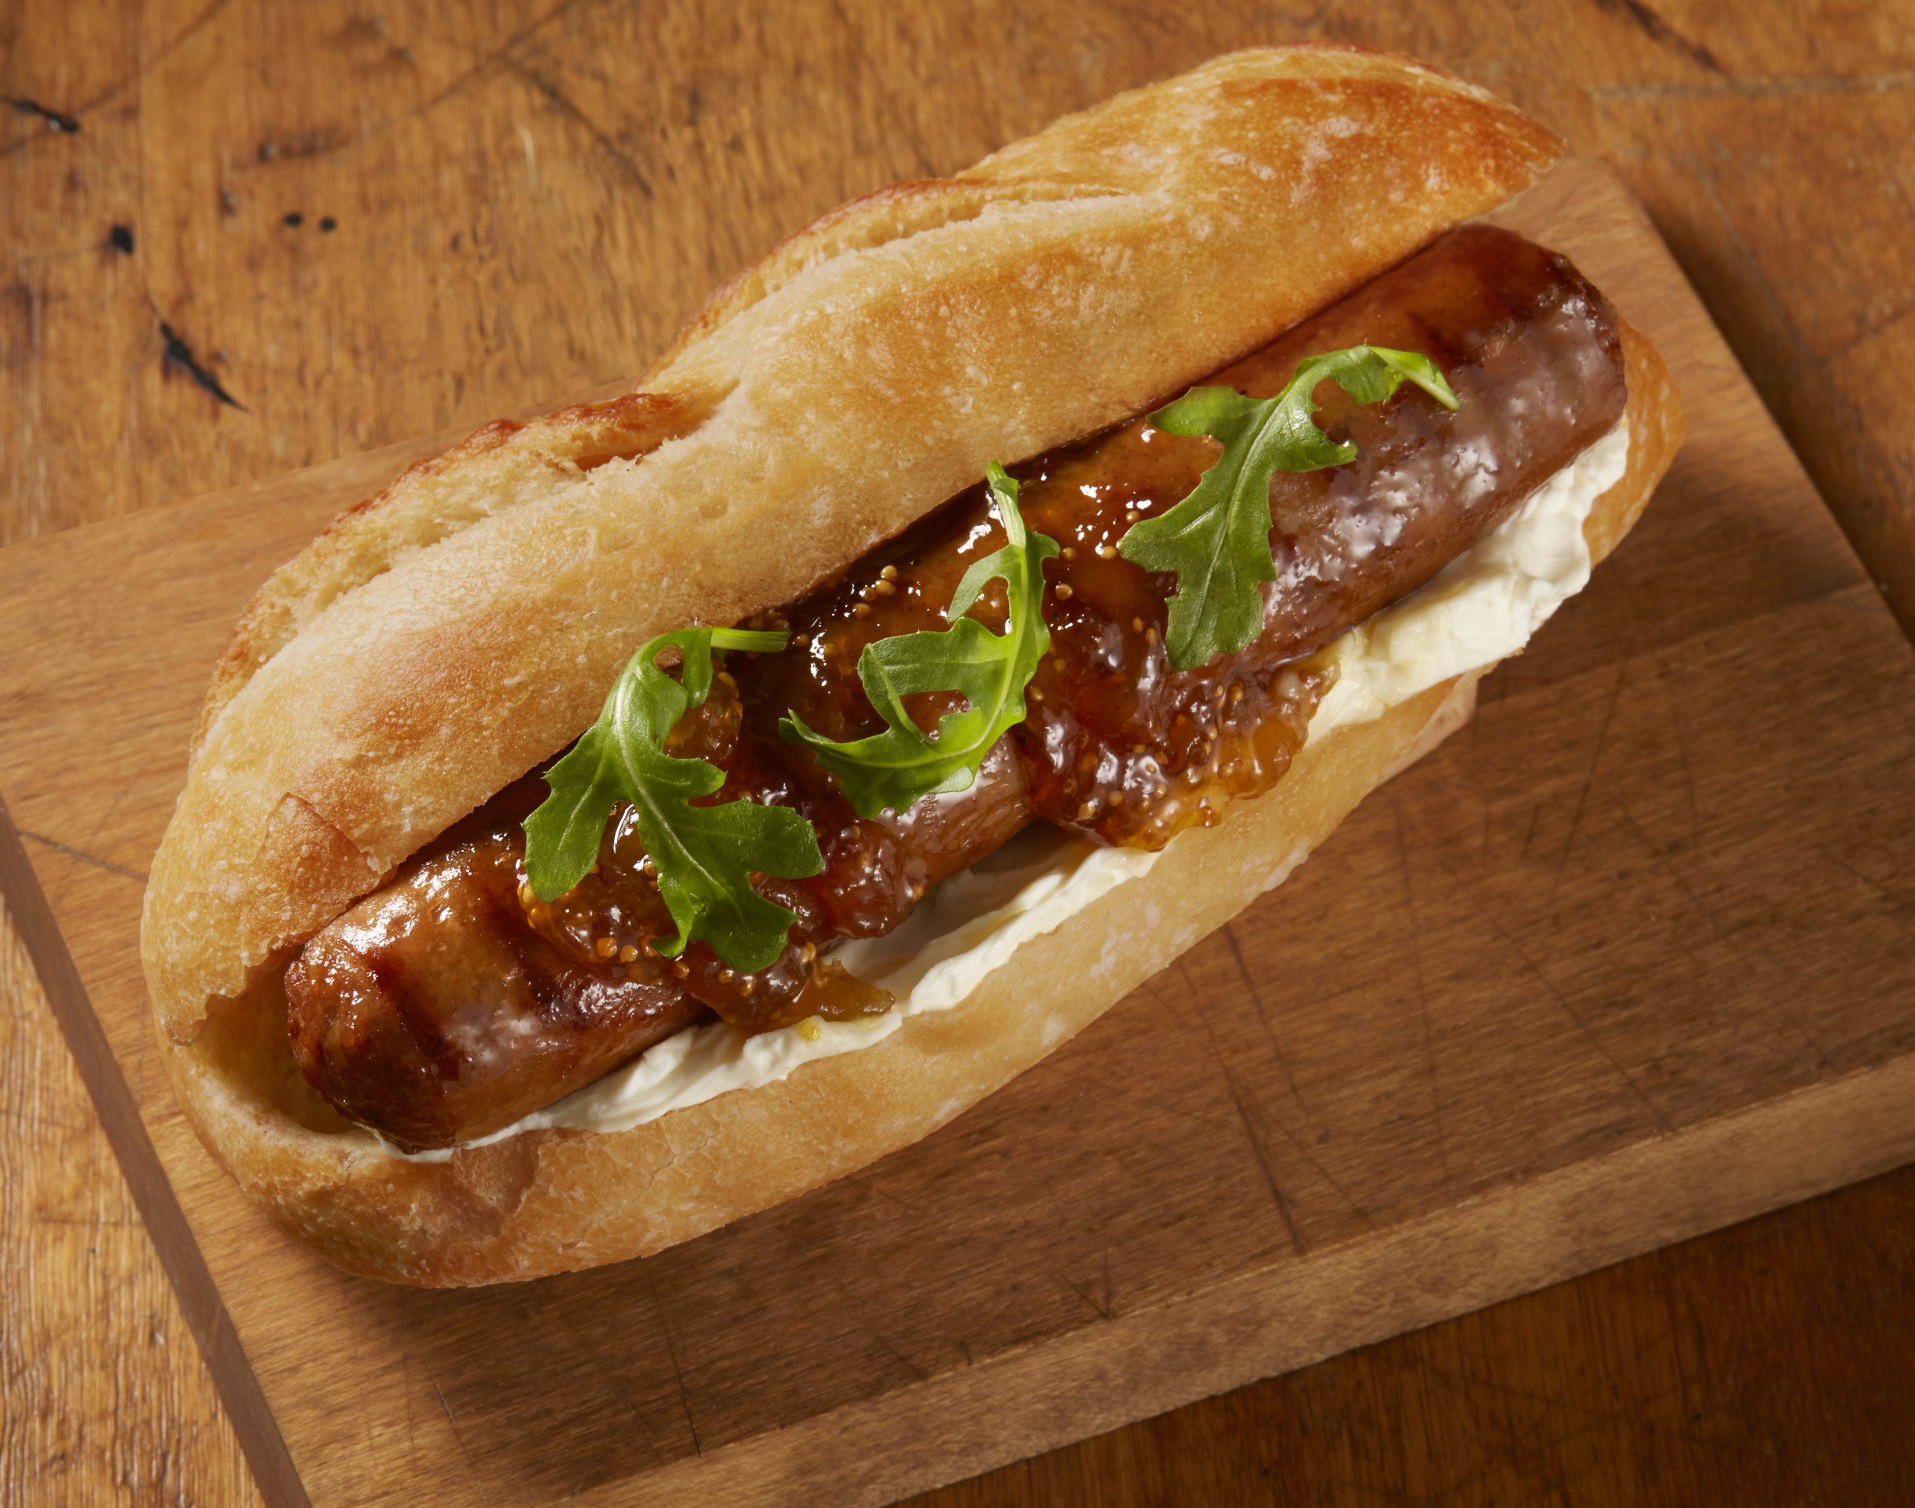 Johnsonville Foodservice grilled All-Day Sausage featuring French Toast Sausage flavor served in a bun with glaze and garnish